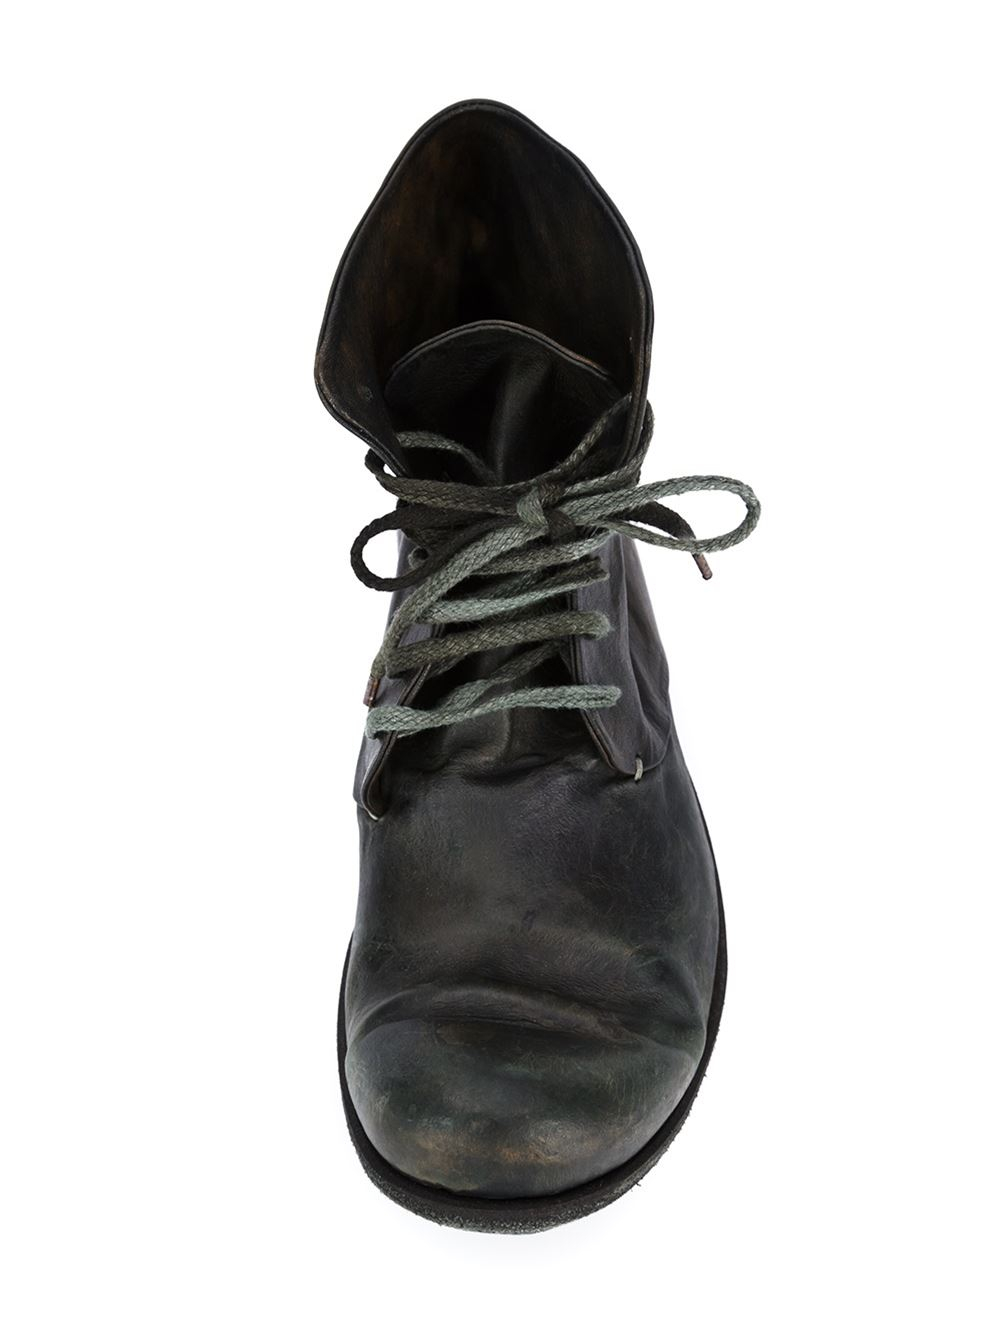 A Diciannoveventitre Leather Lace-up Distressed Boots in Black